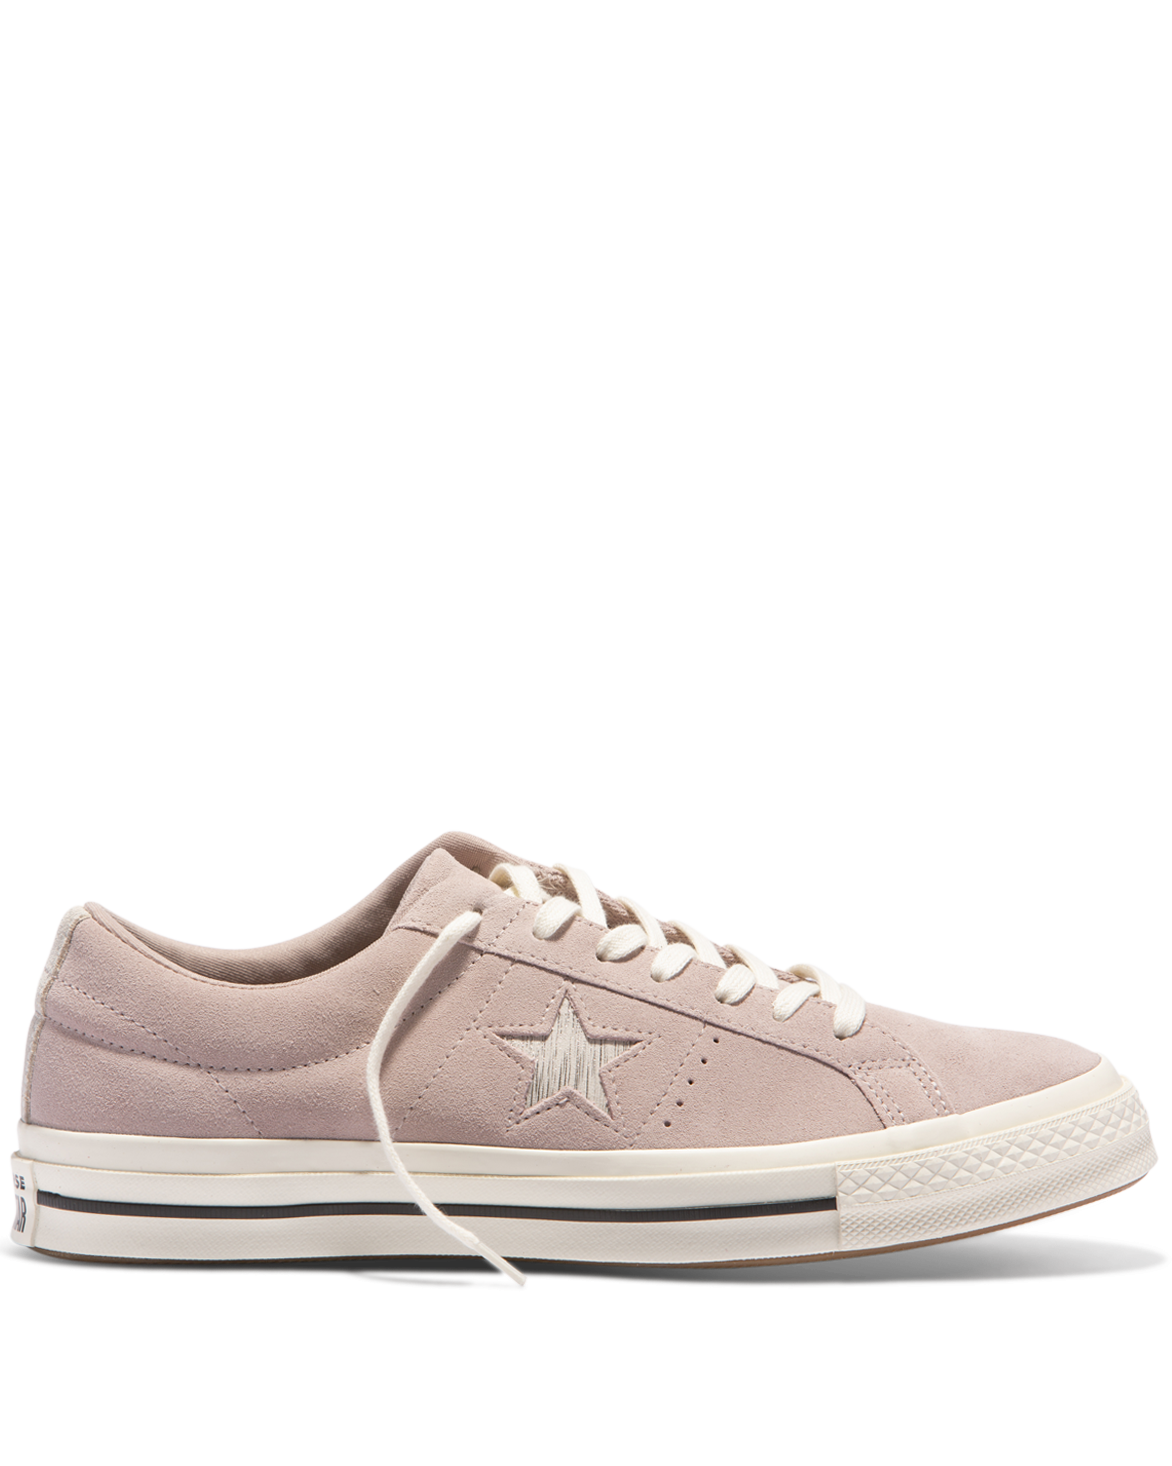 b26495d8a9d Converse One Star Metallic Logo Low Top - Diffused Taupe is a suede sneaker  with metallic star detailing.  soulclothingwanaka  shoponline  soulstyle ...